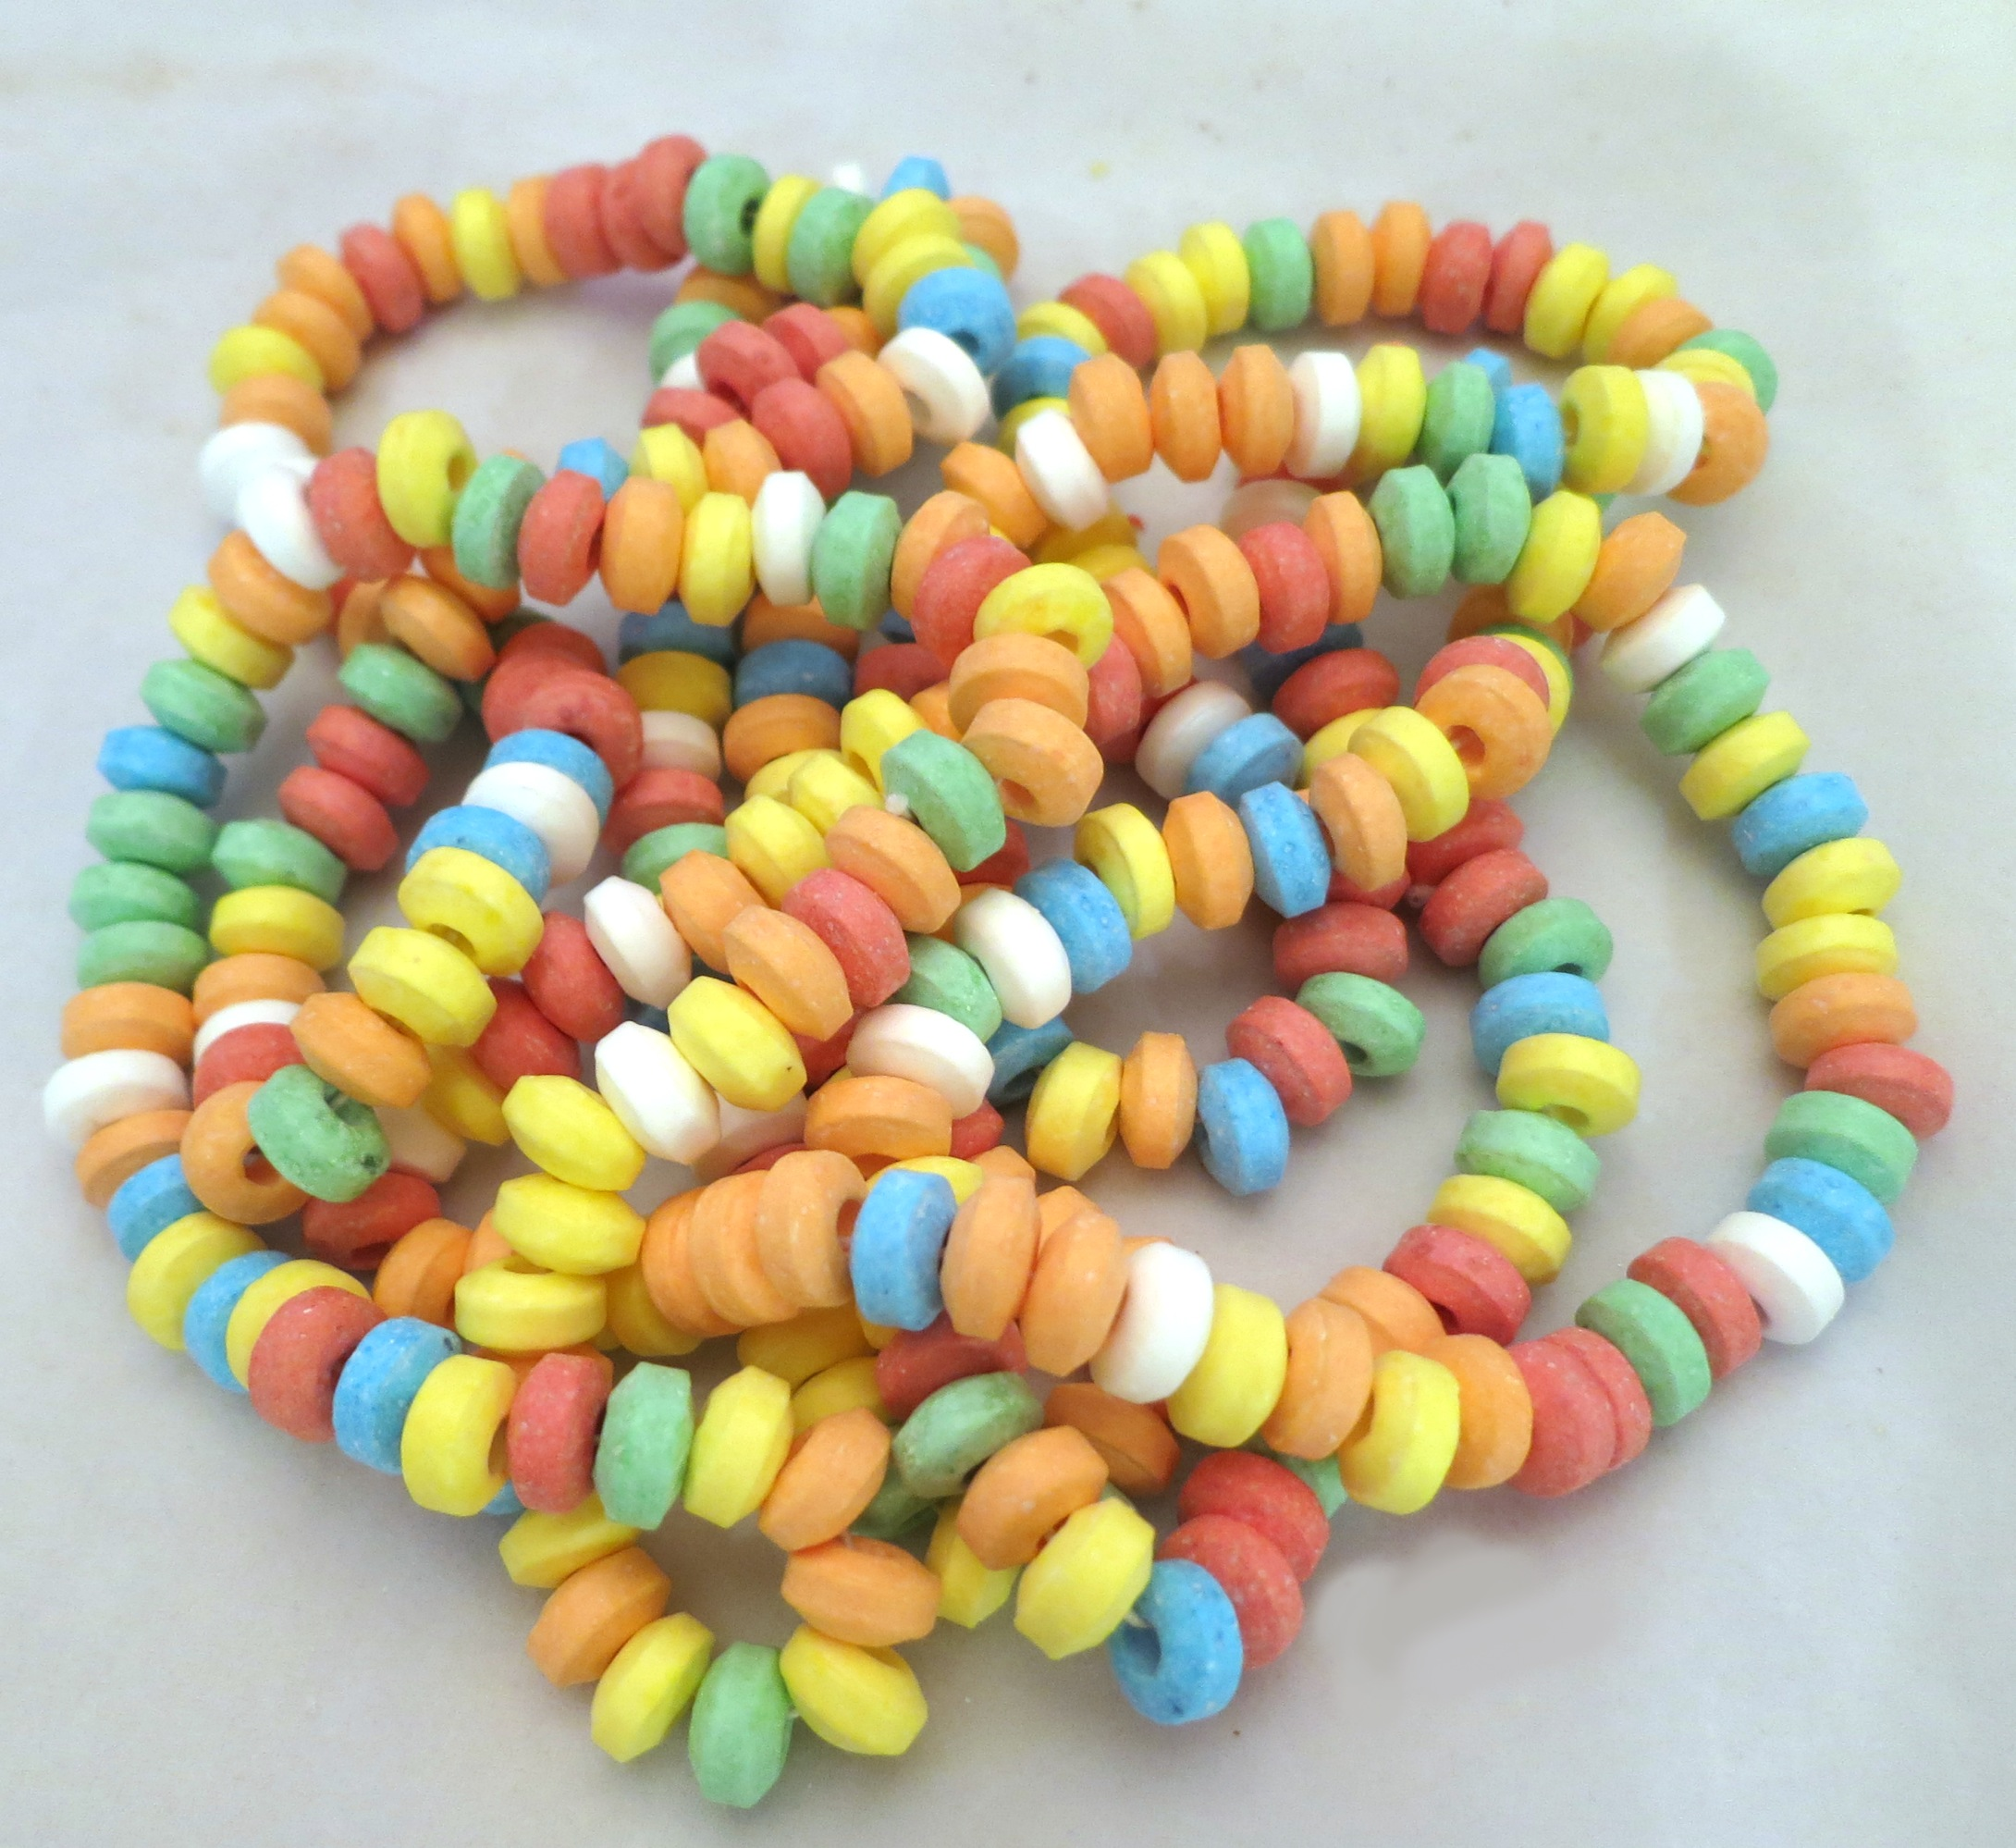 necklaces made from candy